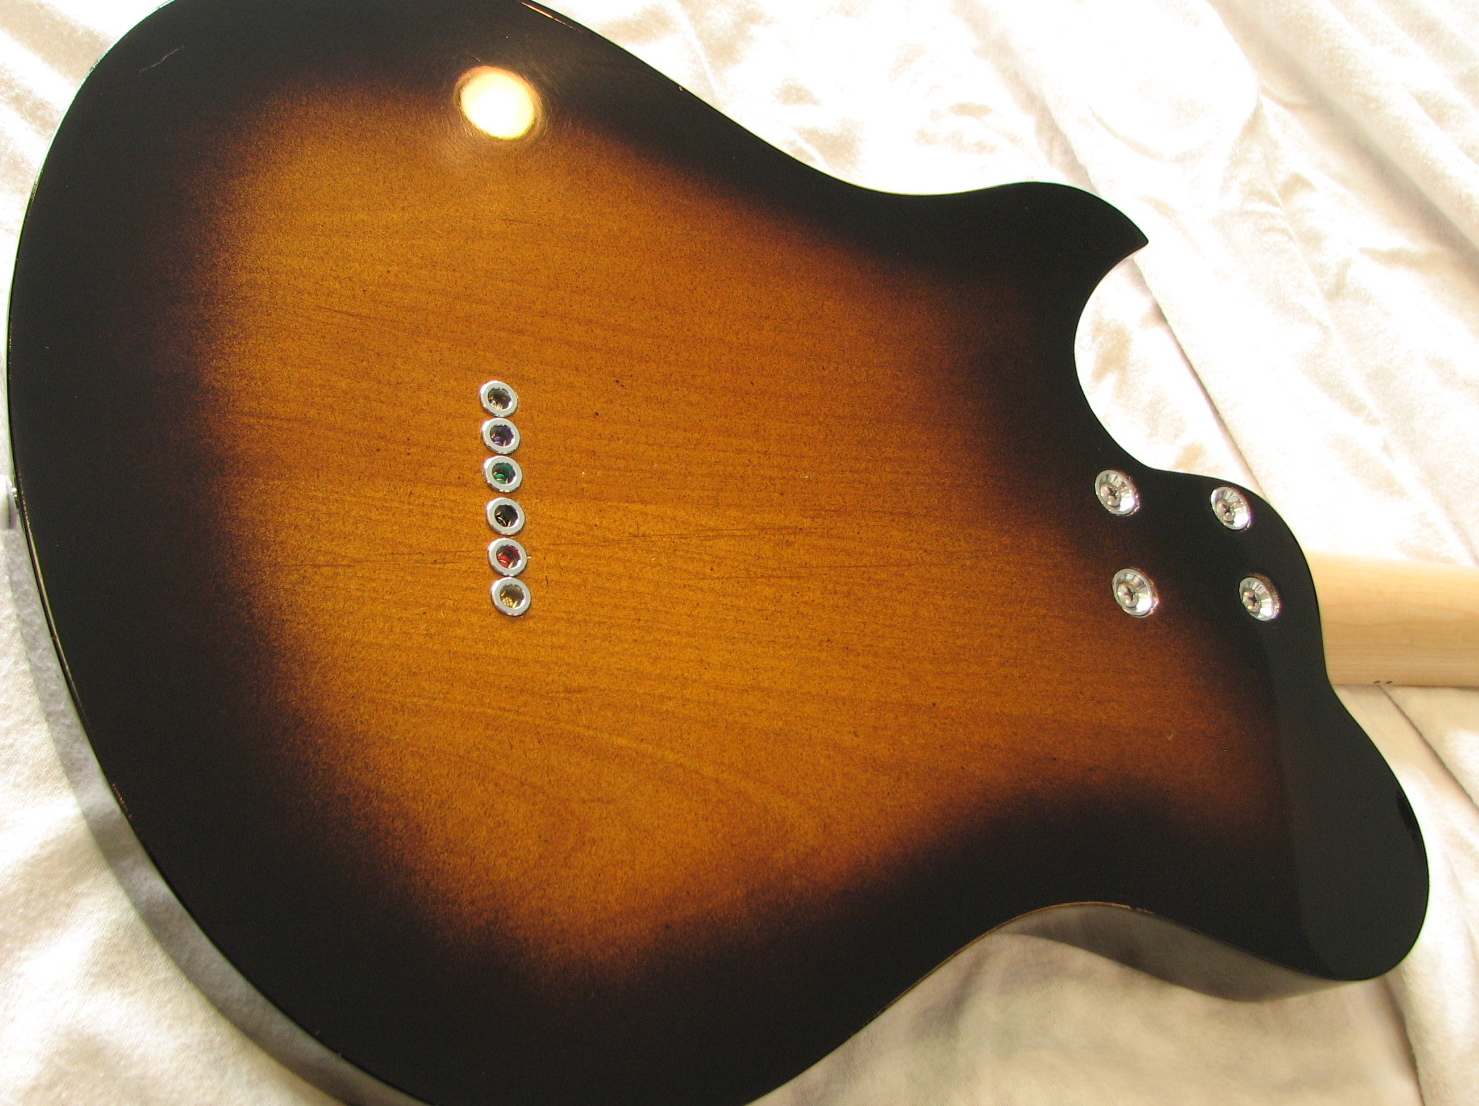 The black edge burst is reminiscent of the old Kay guitars that CB loves